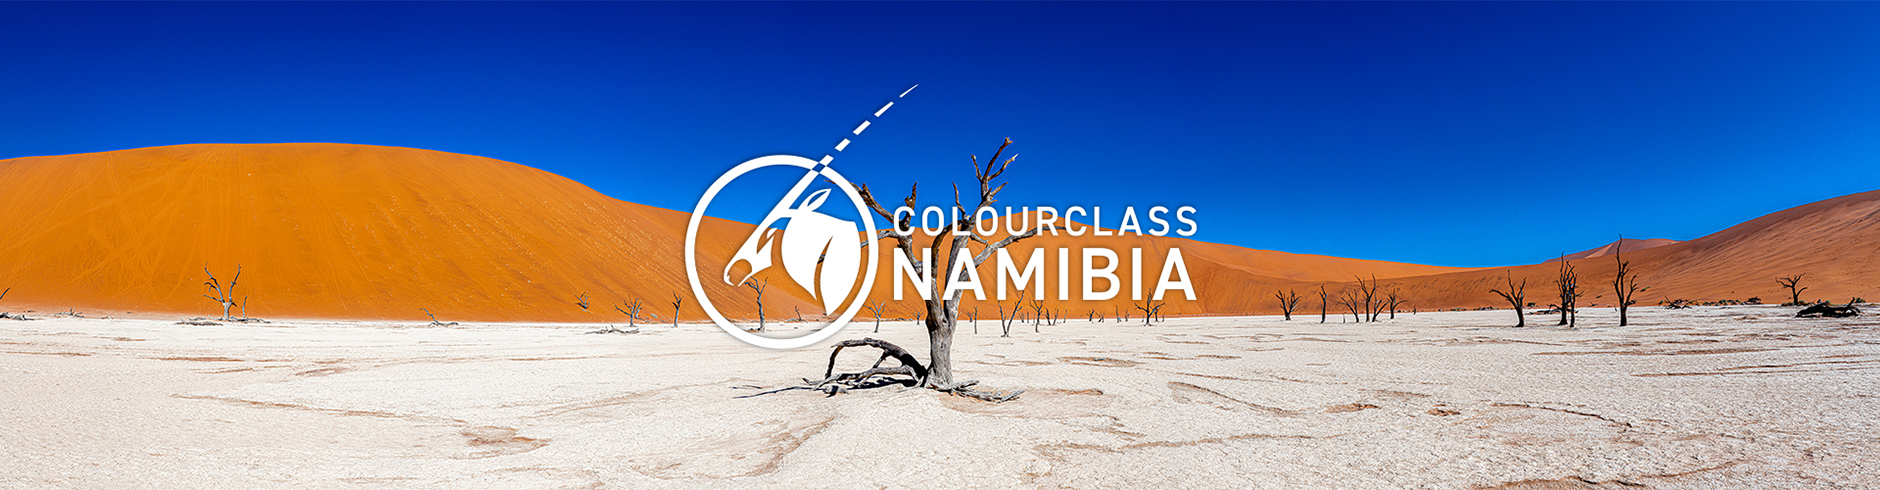 Colourclass Namibia